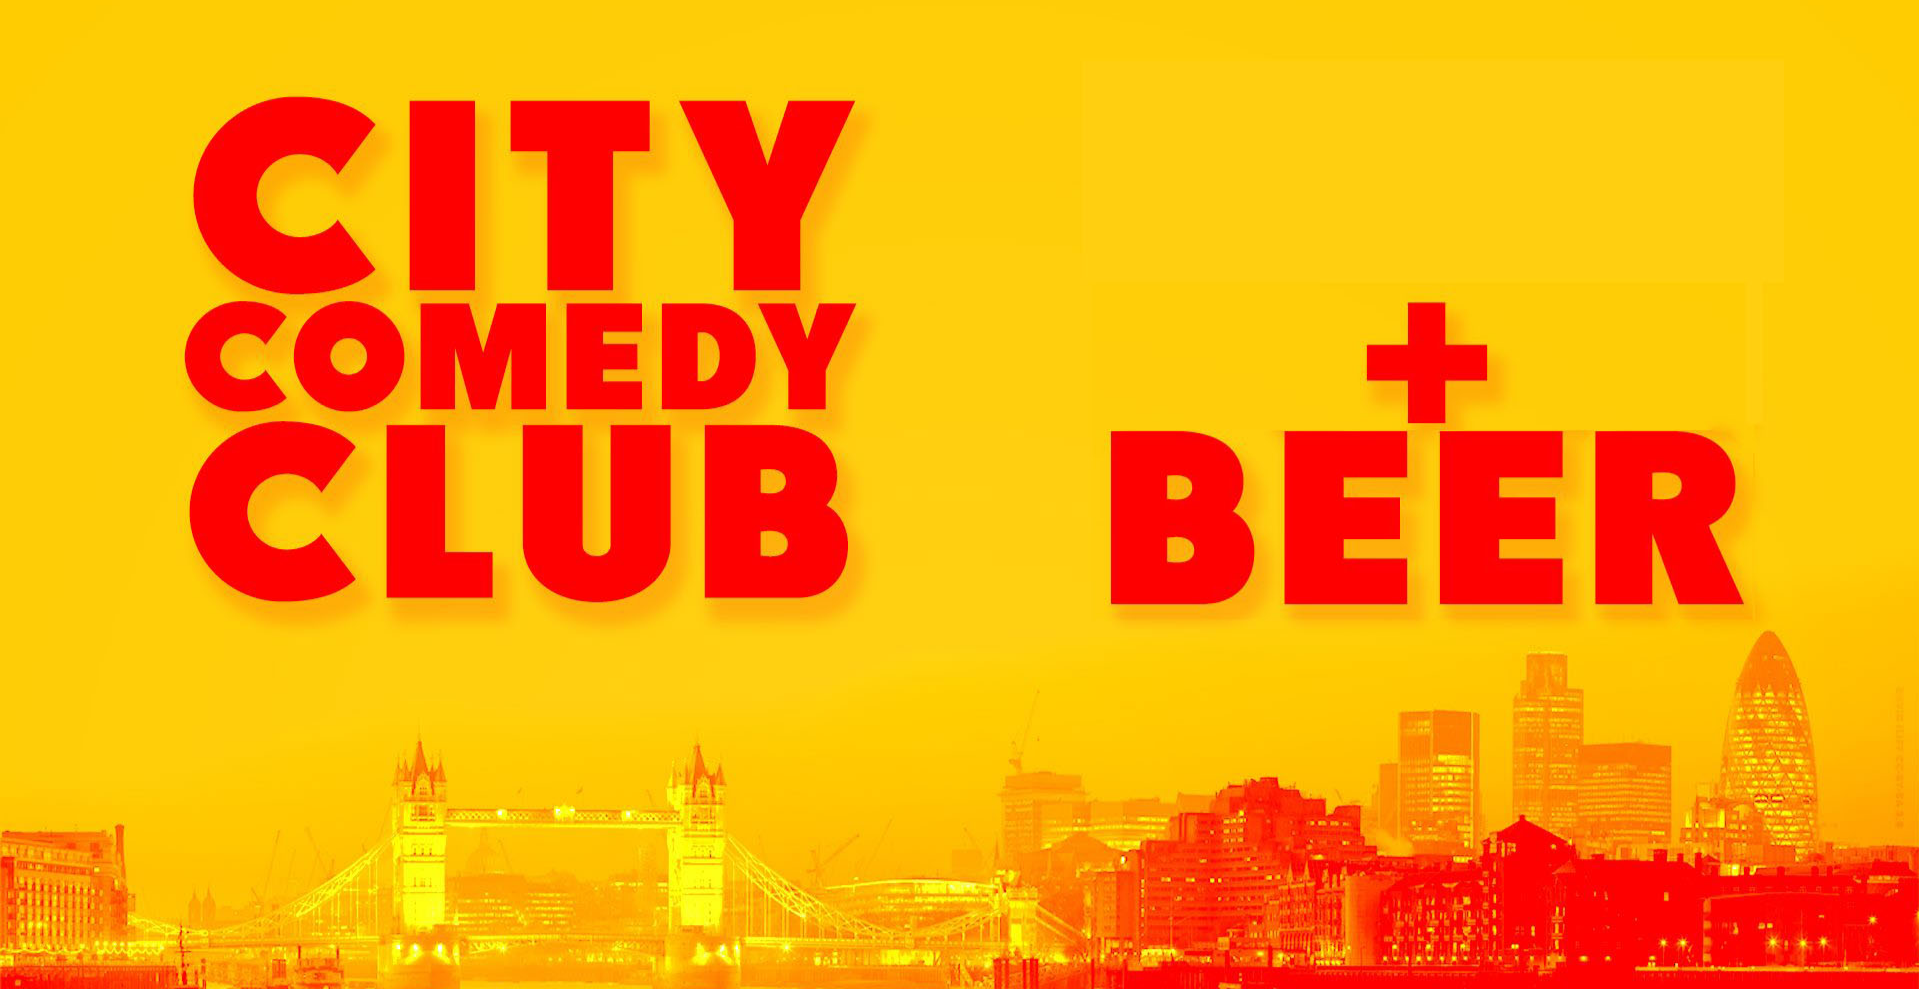 CITY COMEDY CLUB + A BEER